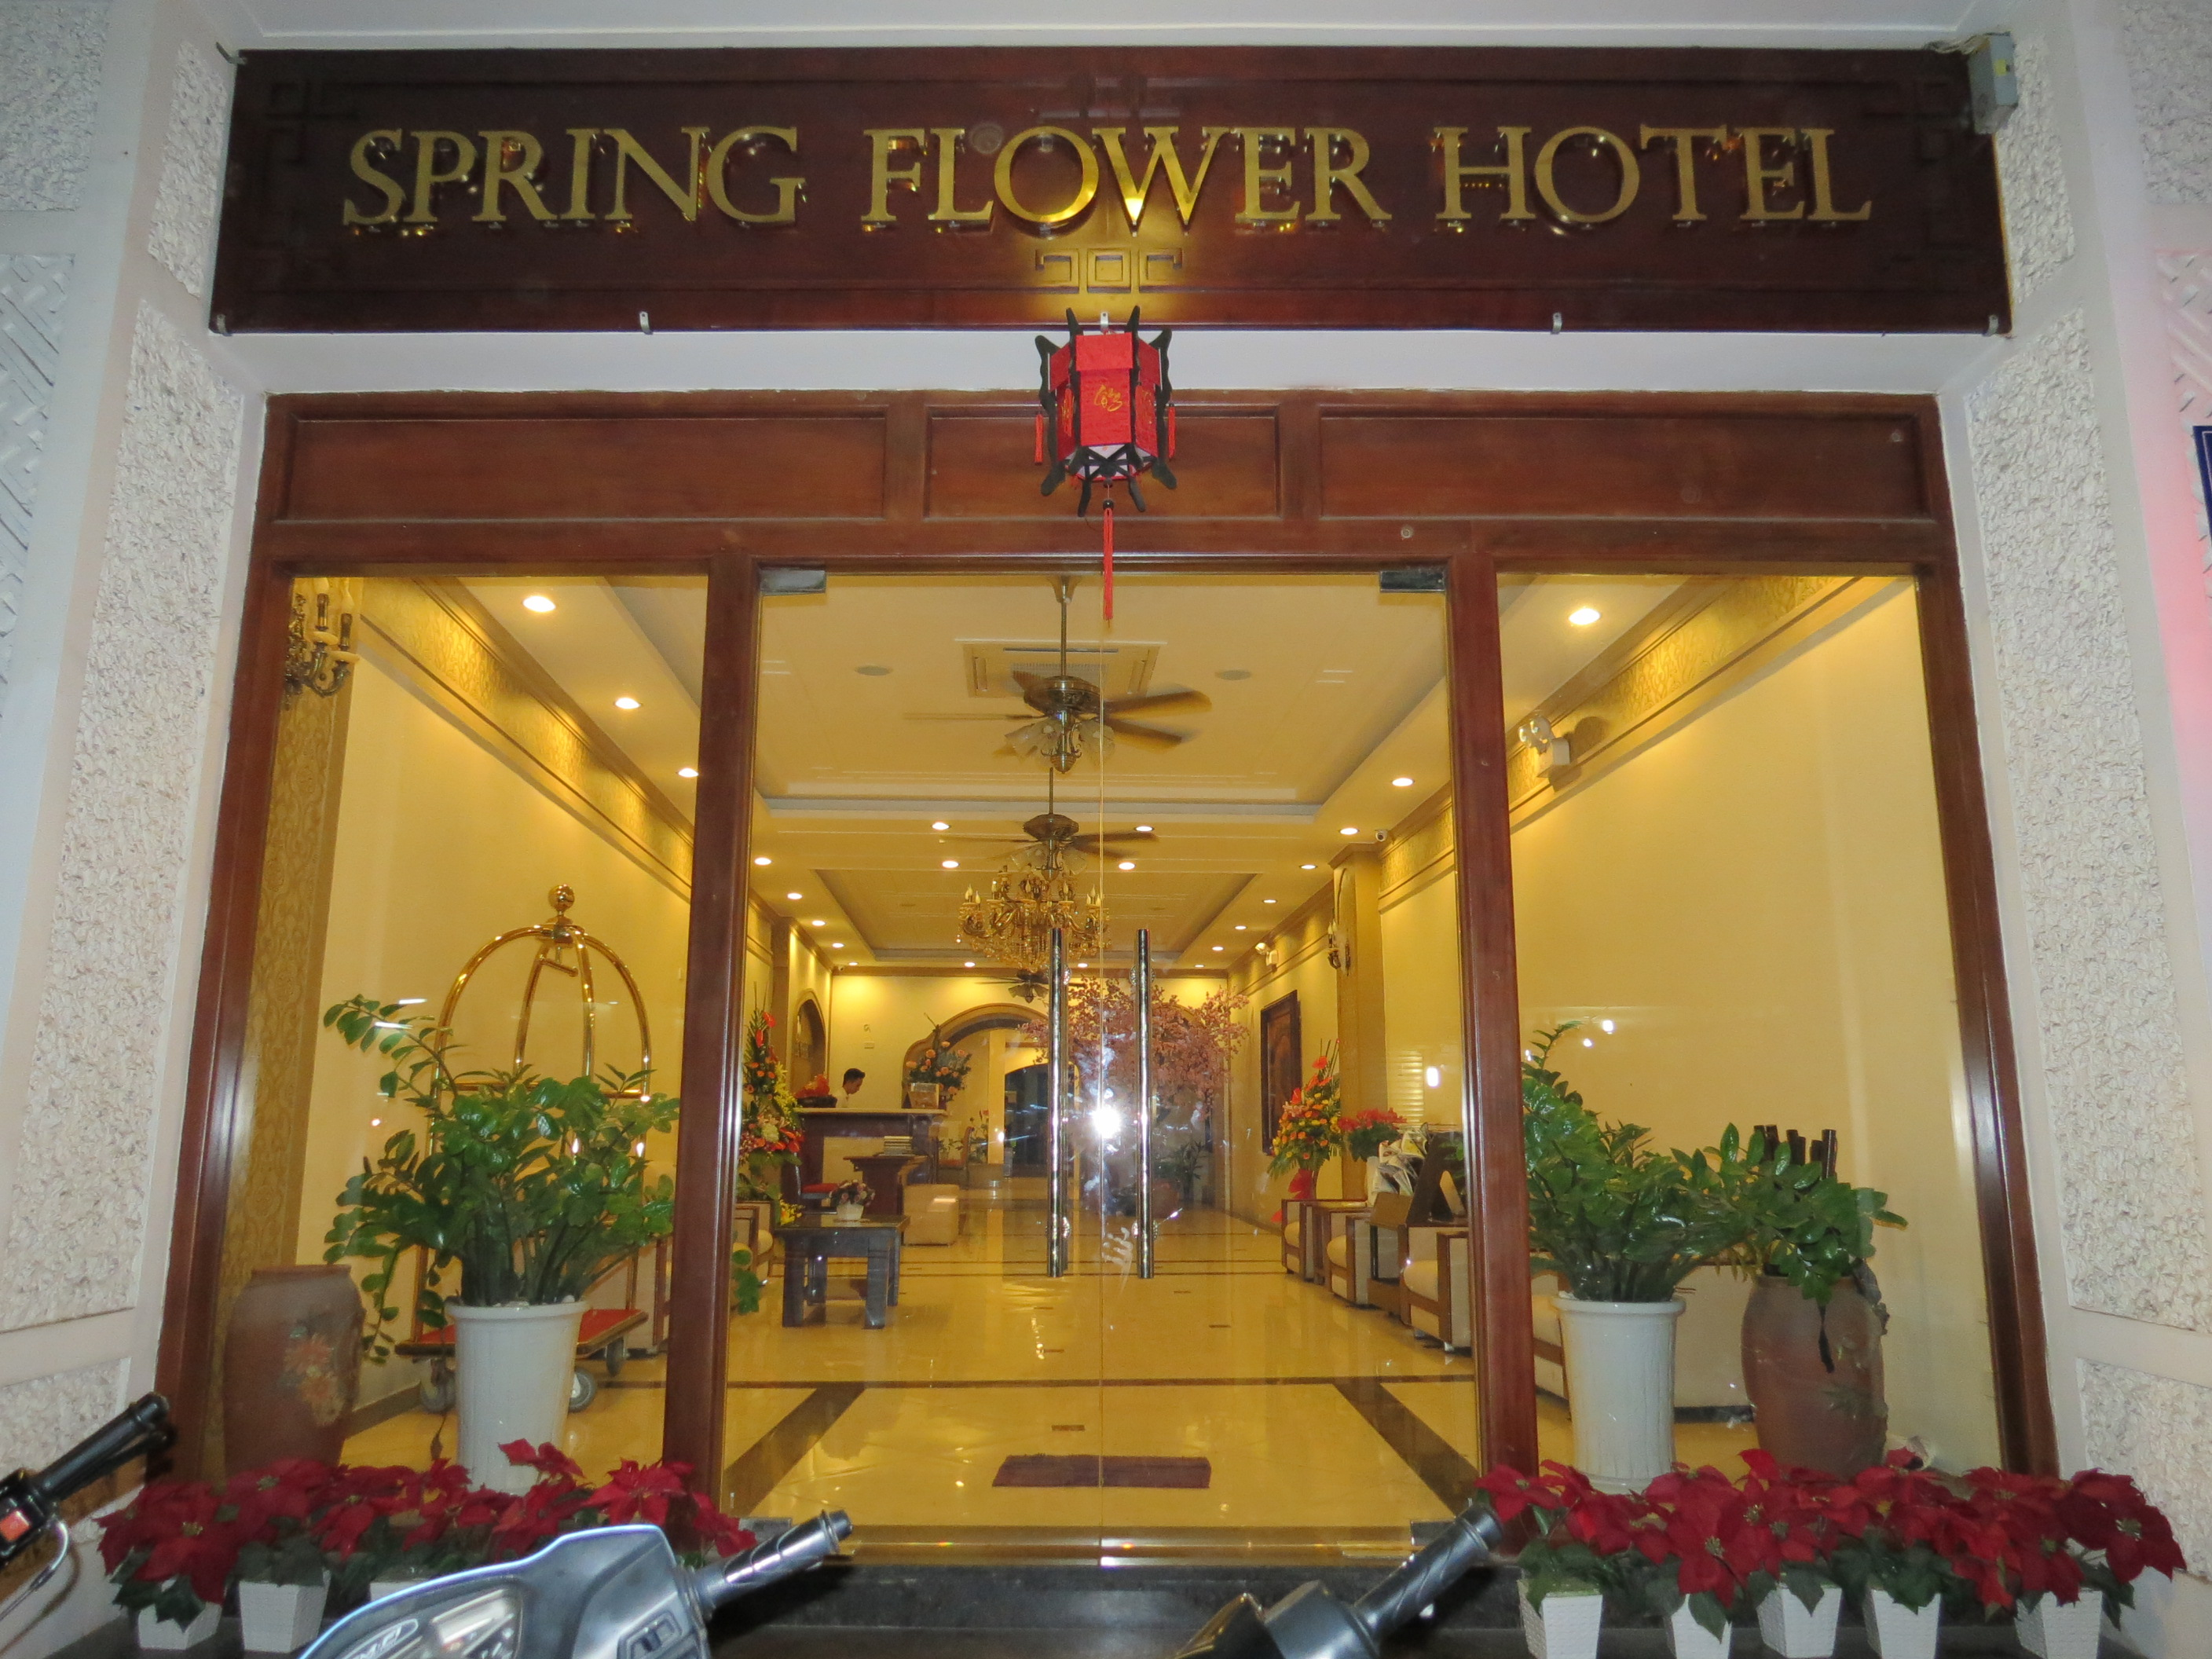 Hotel review spring flower hotel the world by faith and housing the best restaurants the city has to offer is the old quarter tucked in one of the streets therein is spring flower hotel mightylinksfo